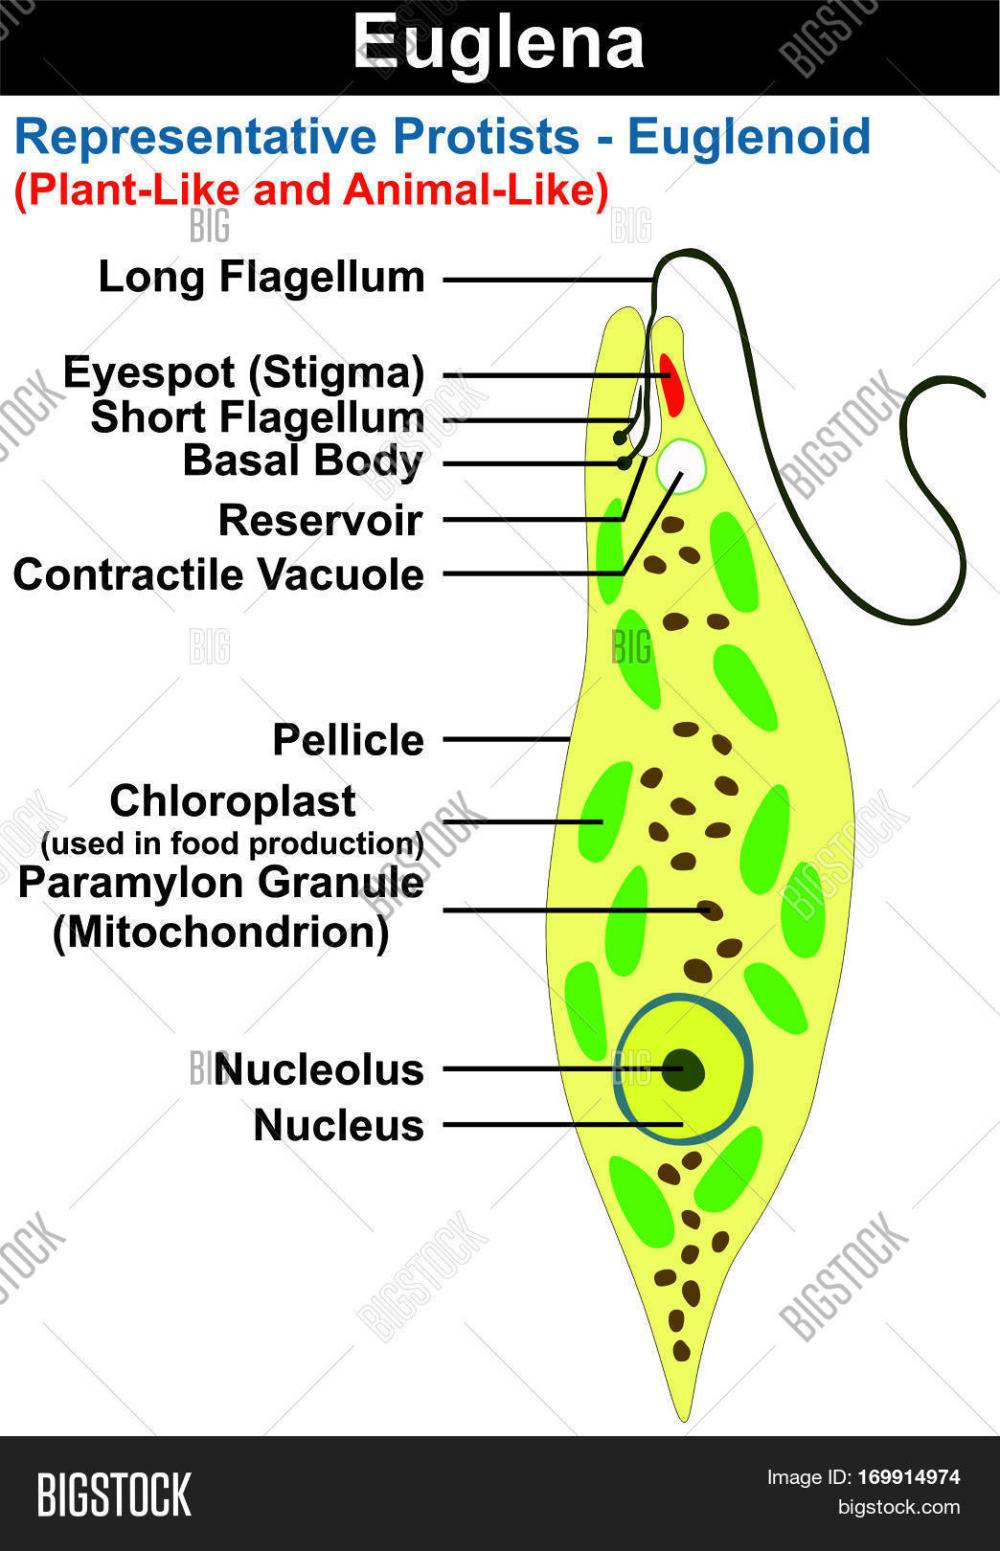 medium resolution of euglena cross section diagram representative protists euglenoid plant like and animal like microscopic creature all